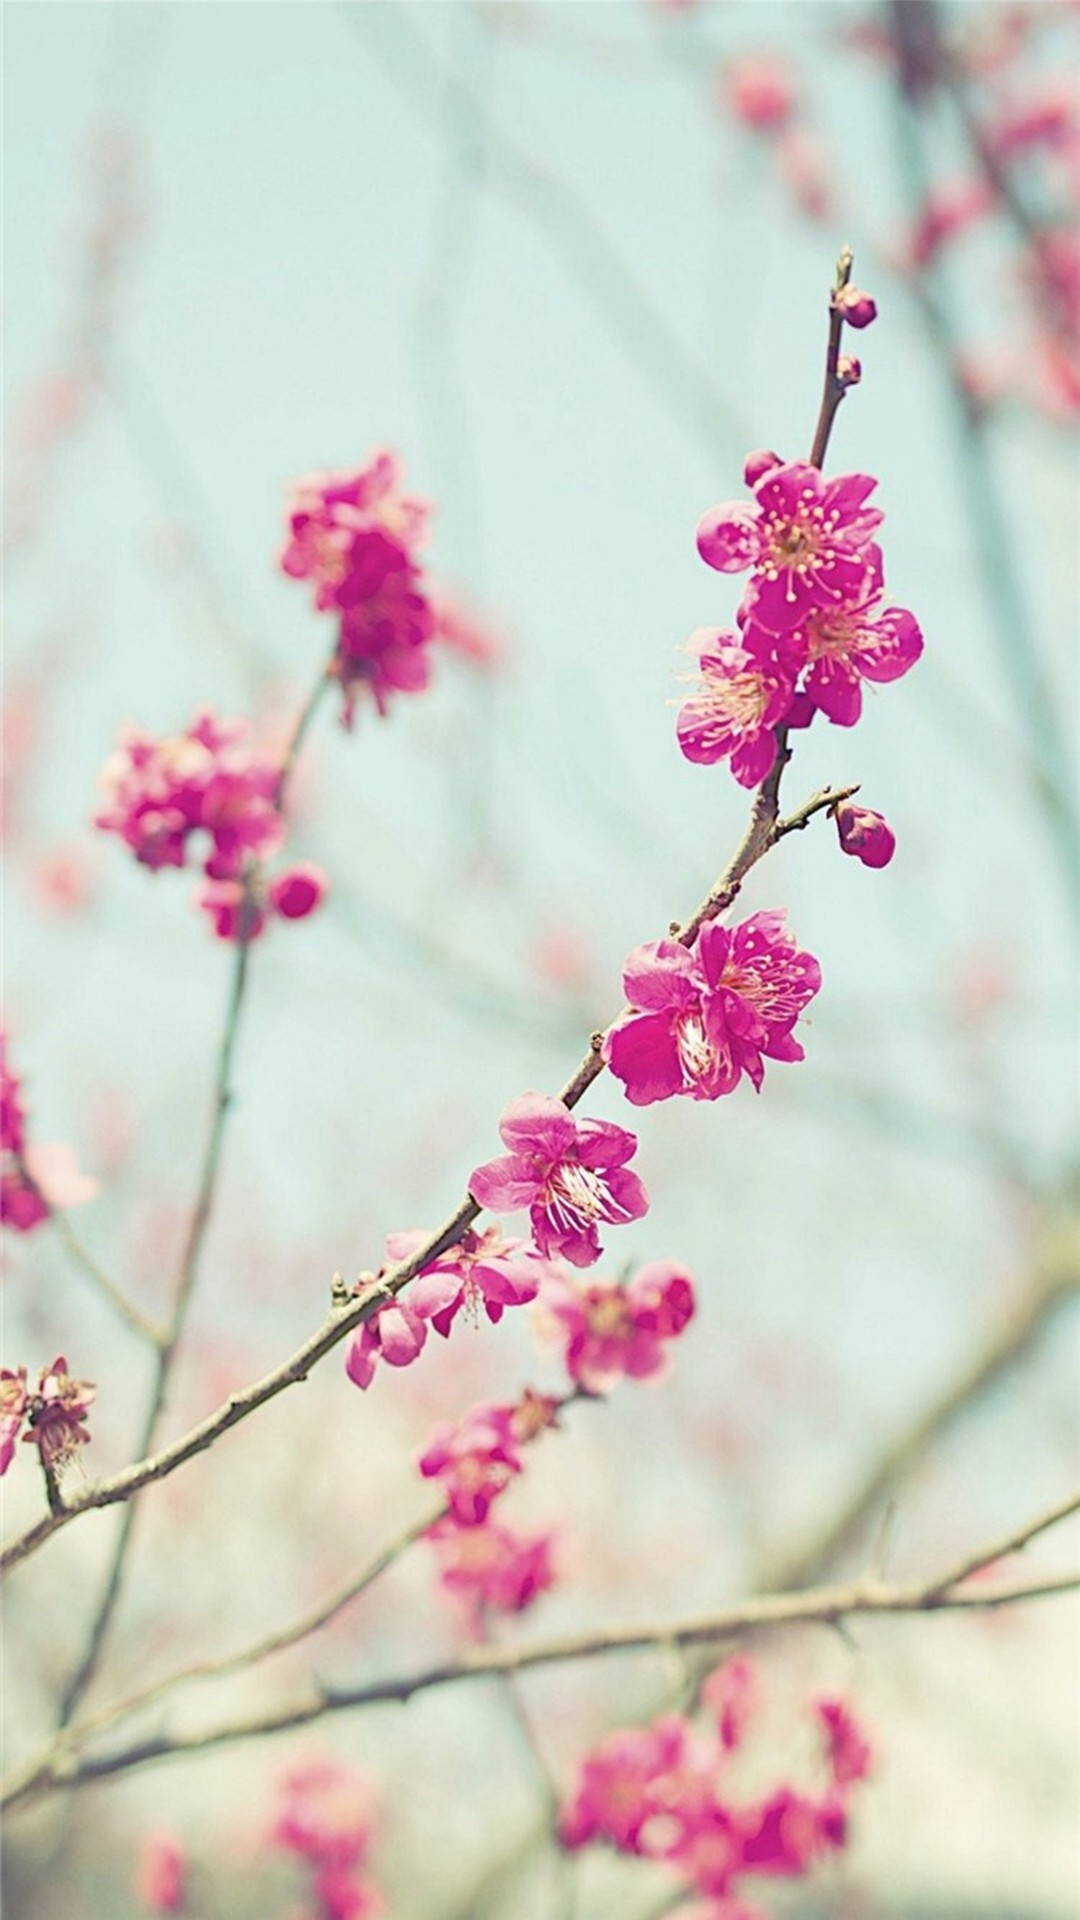 Peach Blossom Spring Nature Branch iPhone 6 wallpaper